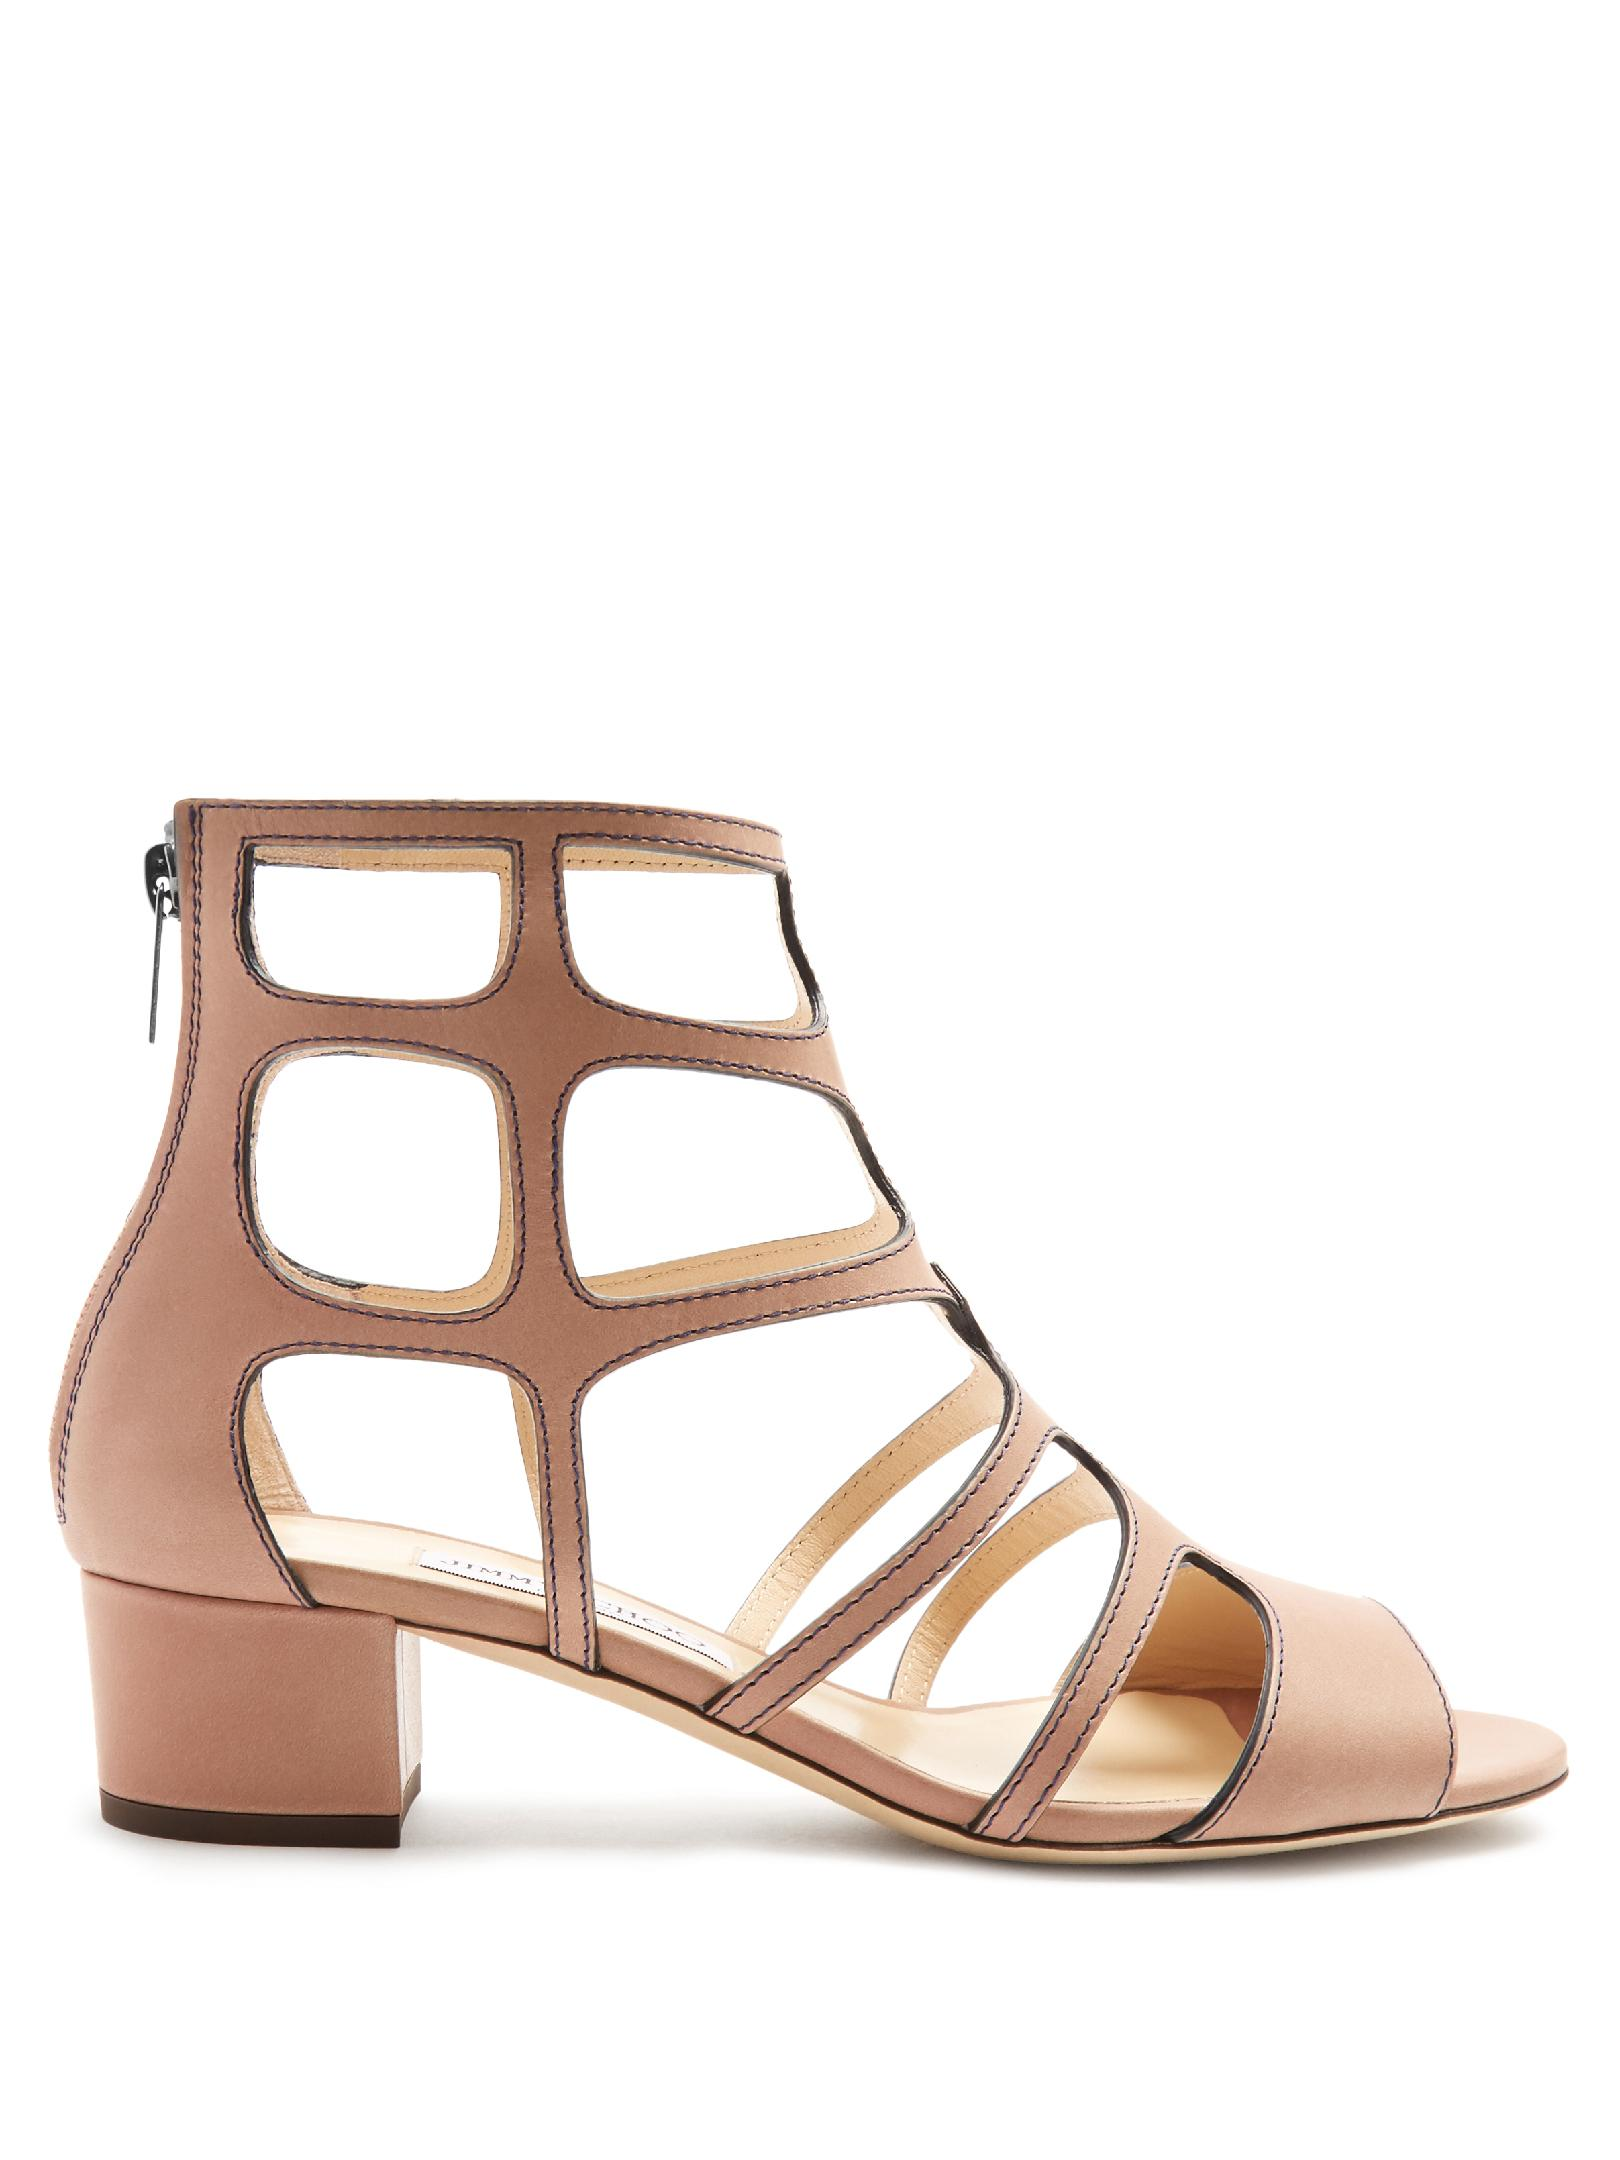 f2e1346506c9 Lyst - Jimmy Choo Ren 35mm Block-heel Leather Sandals in Natural